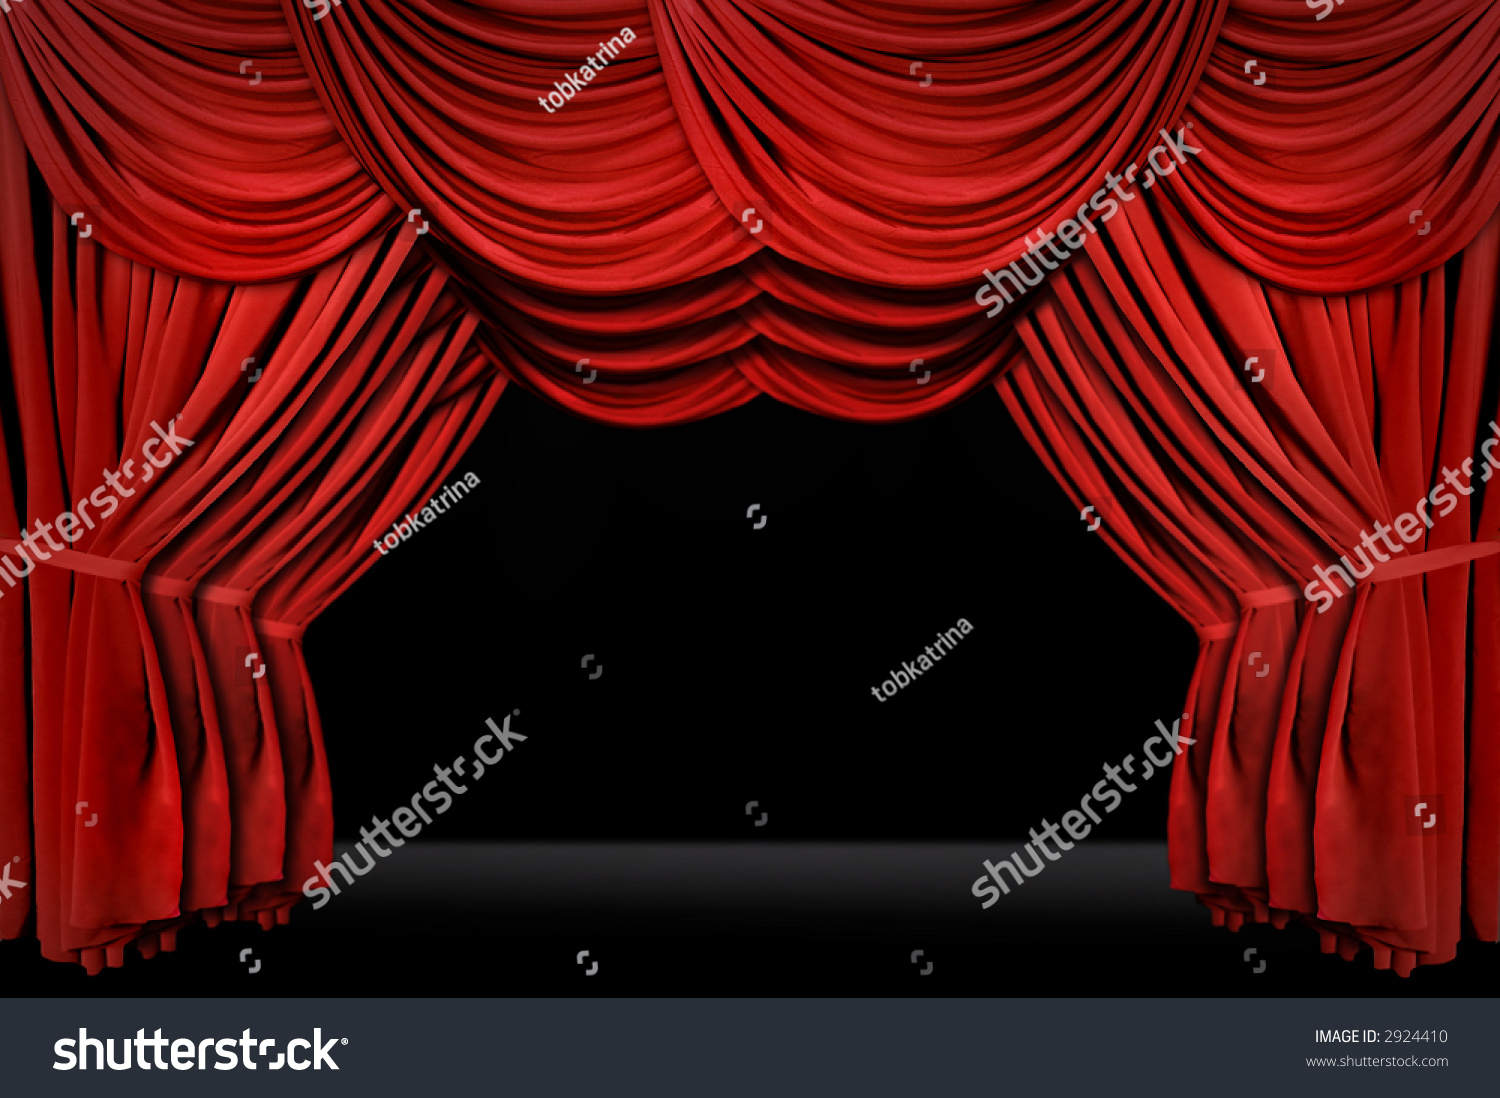 Stock photo dramatic red old fashioned elegant theater stage stock - Horozontal Old Fashioned Elegant Theater Stage With Velvet Curtains Leading Upstage In An Arch